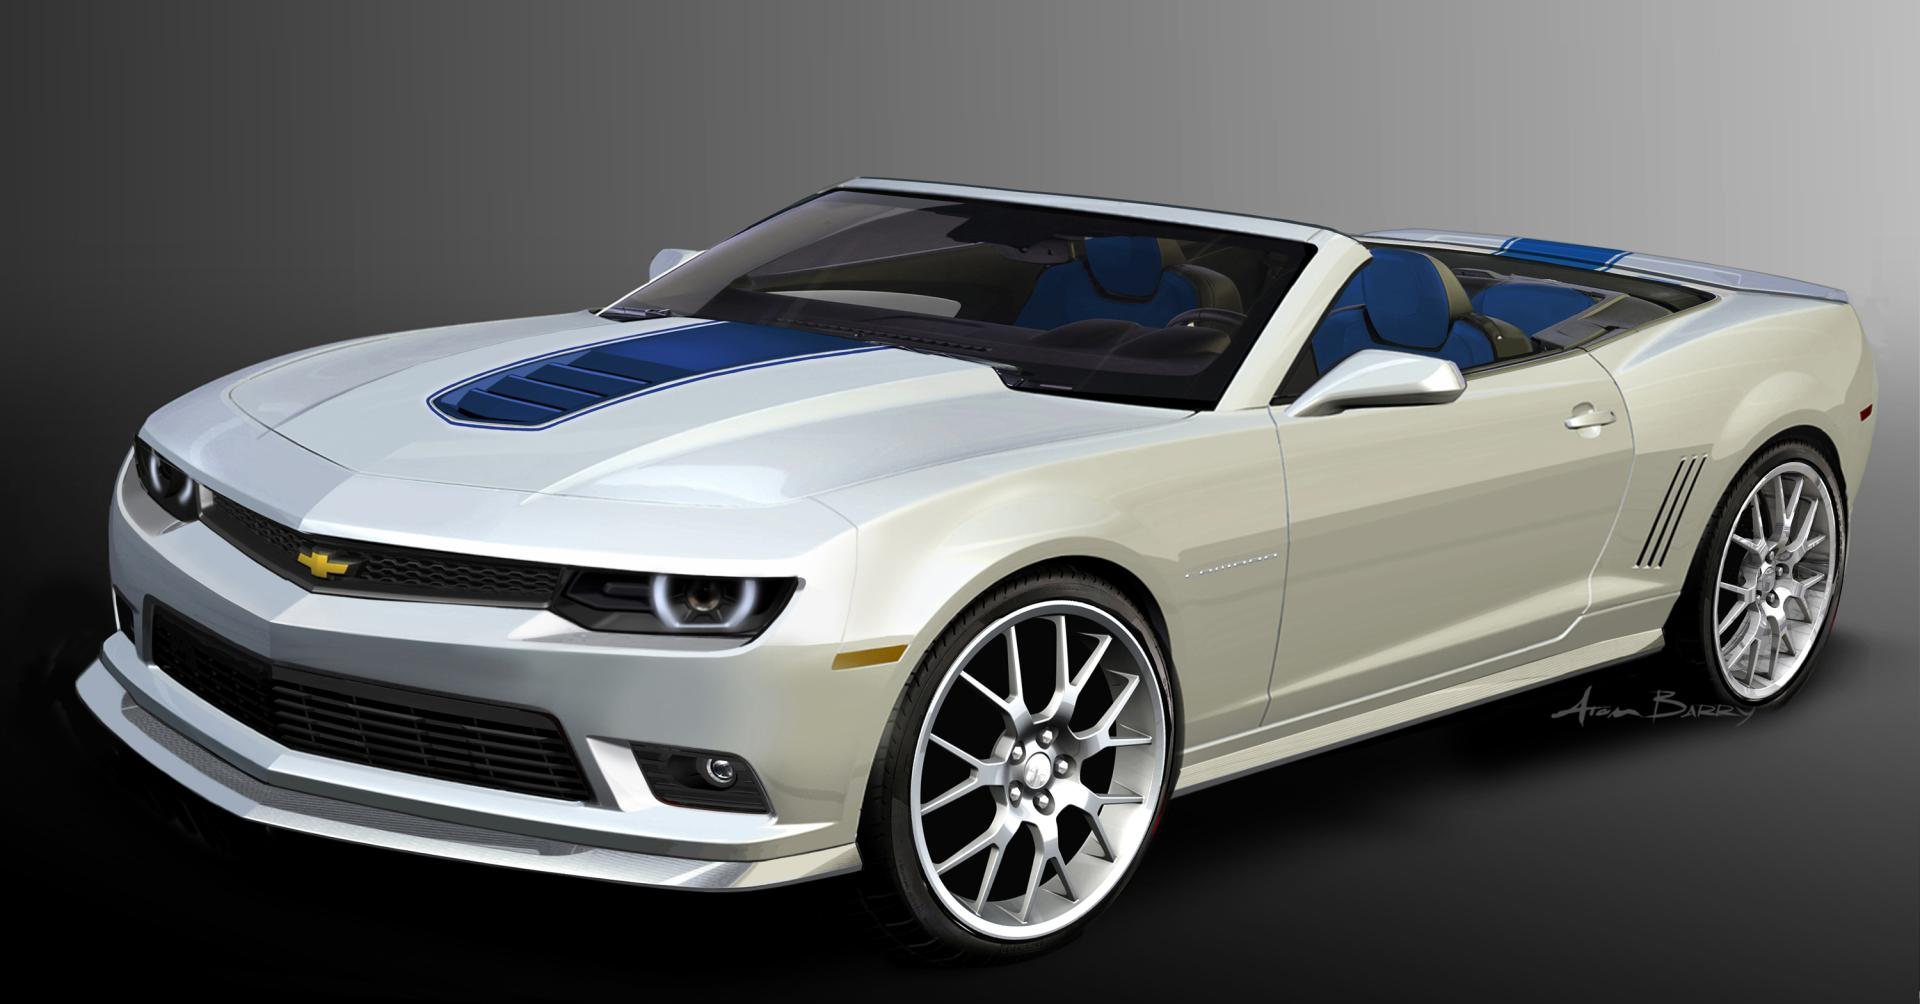 2014 Chevrolet Camaro Spring Special Edition News and ...